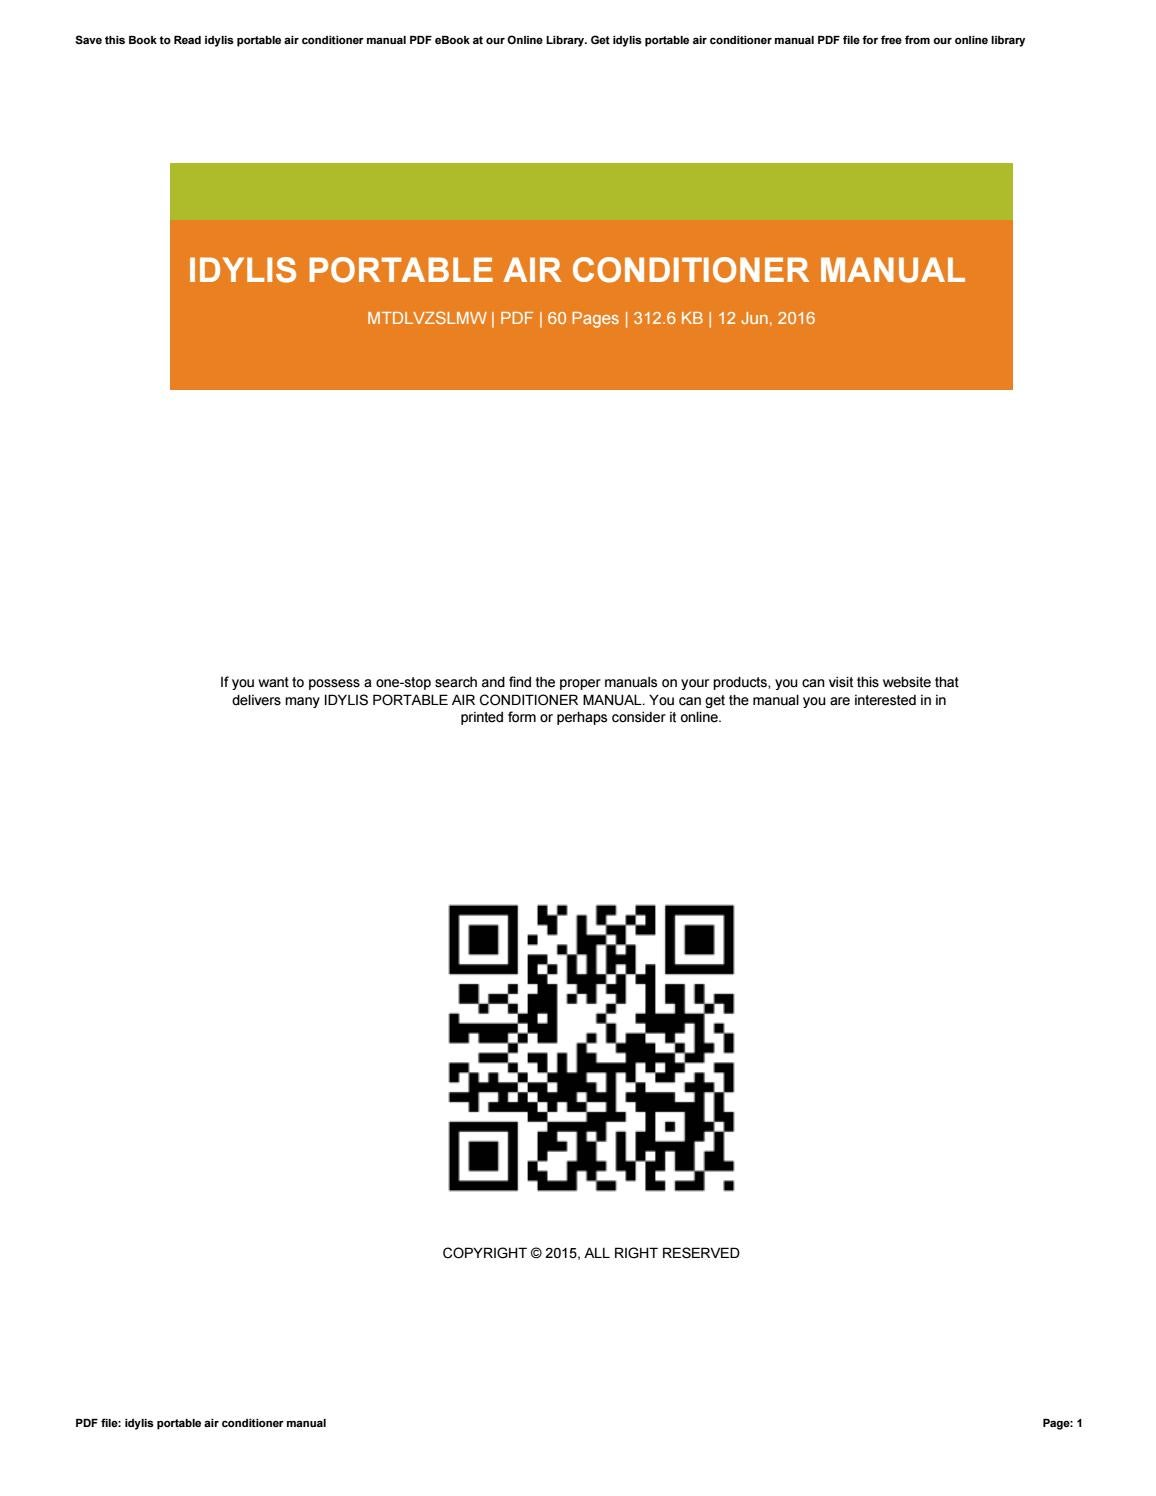 Idylis 13000 air conditioner manual best electronic 2018 idylis portable air conditioner manual pdf idylis portable air conditioner manual by stephenmercado2882 fandeluxe Image collections